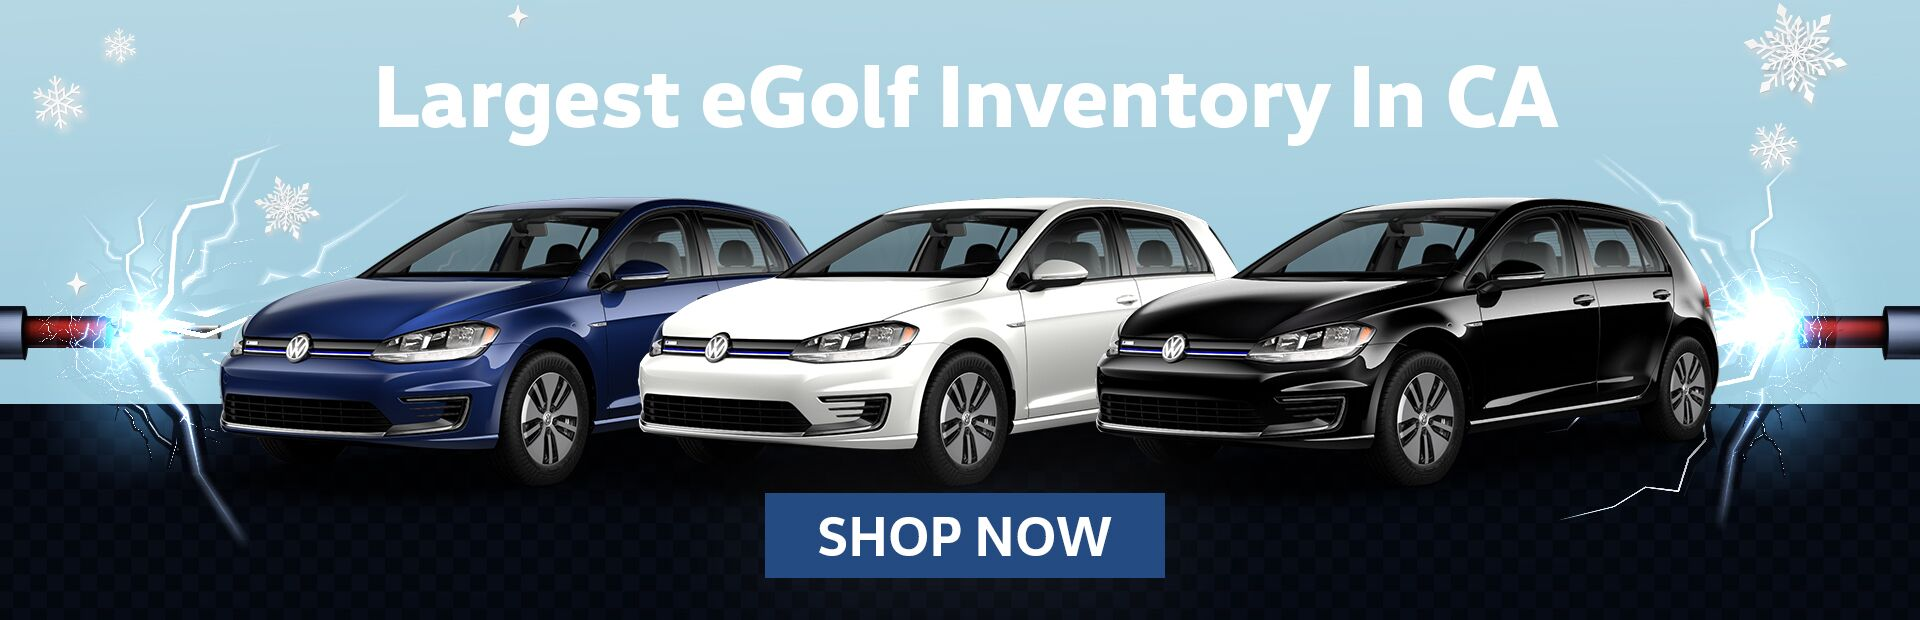 Egolf specials in california